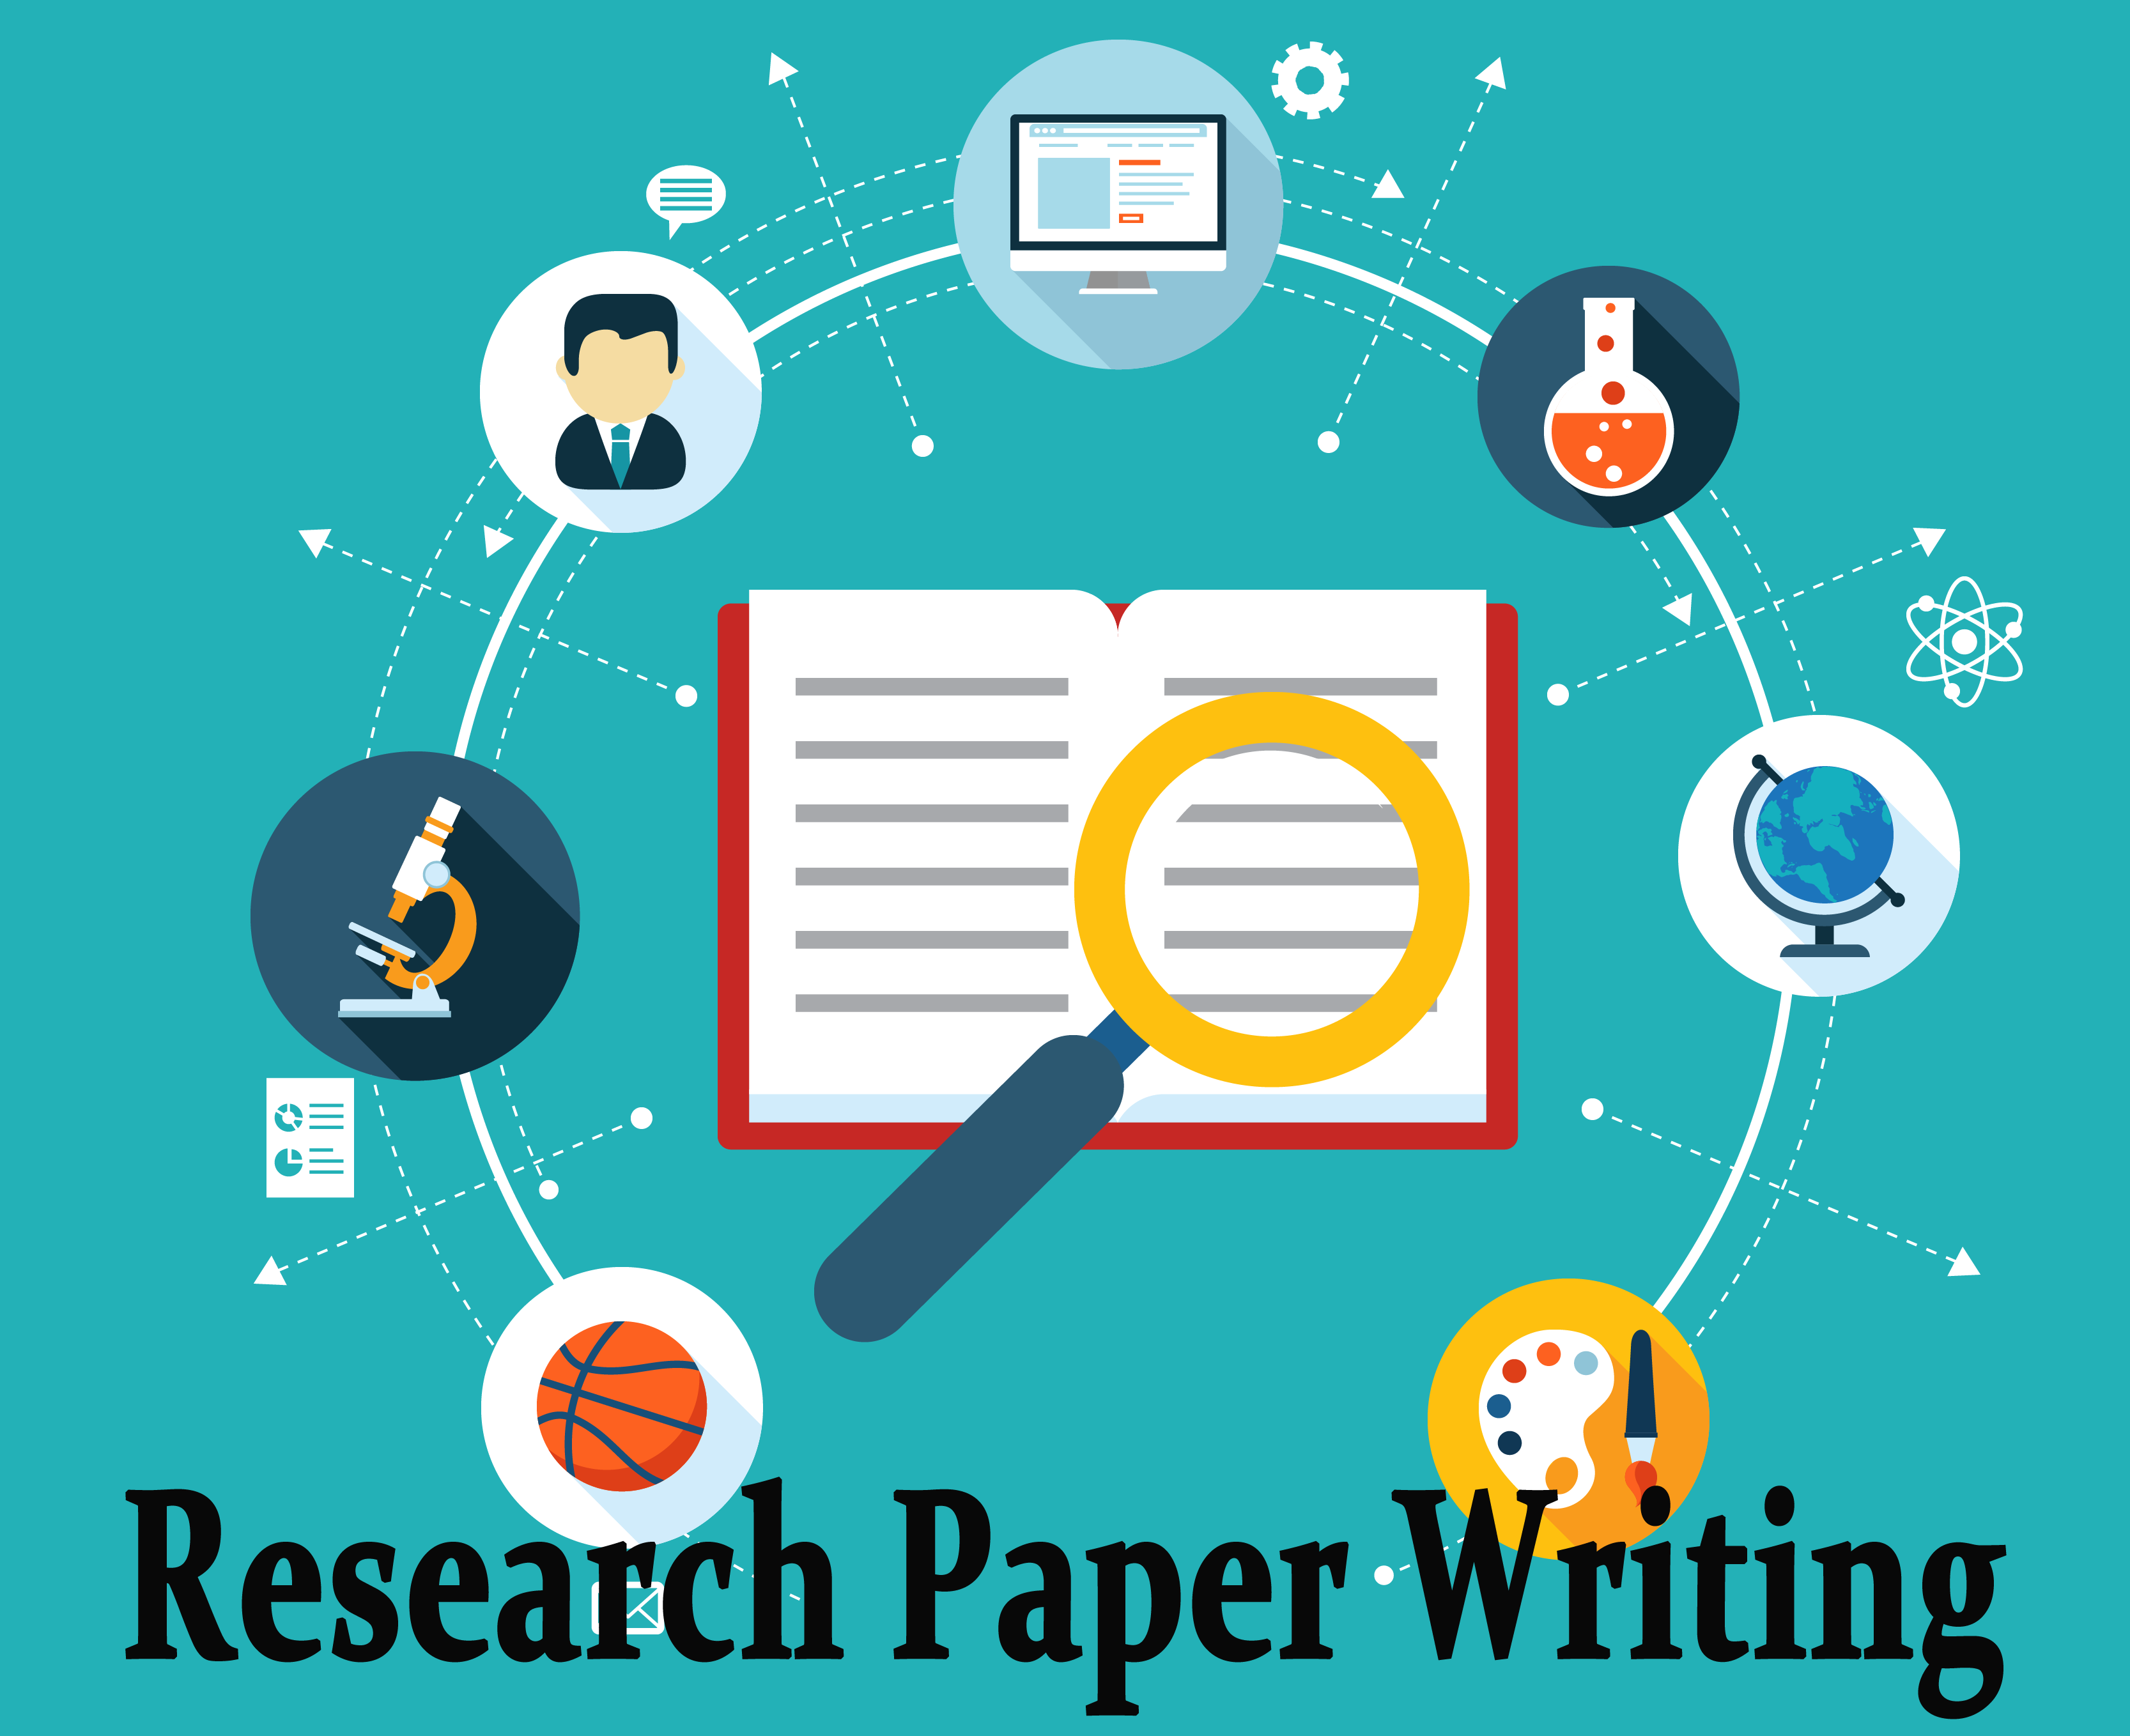 001 Help On Research Paper 503 Effective Writing Sensational Need My Desk With Free Full